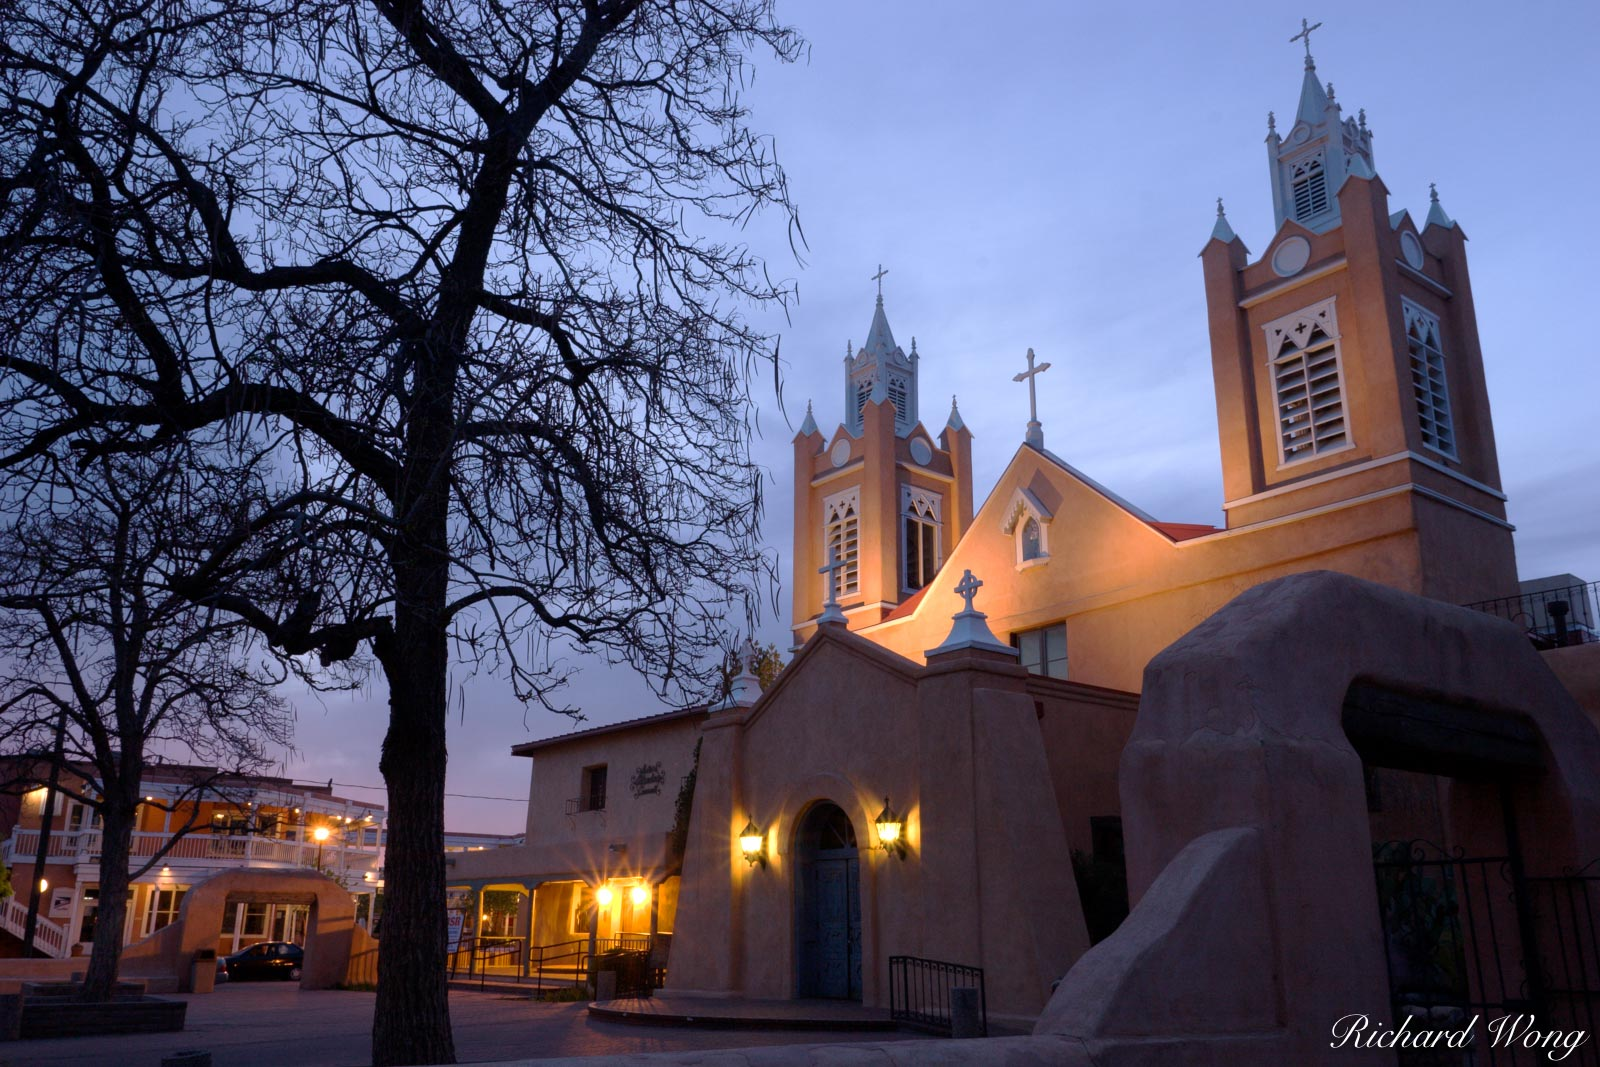 Albuquerque, New Mexico, Old Town Albuquerque, Old Town Plaza, San Felipe Neri Catholic Church, churches, dusk, old buildings, spanish architecture, sunset, photo